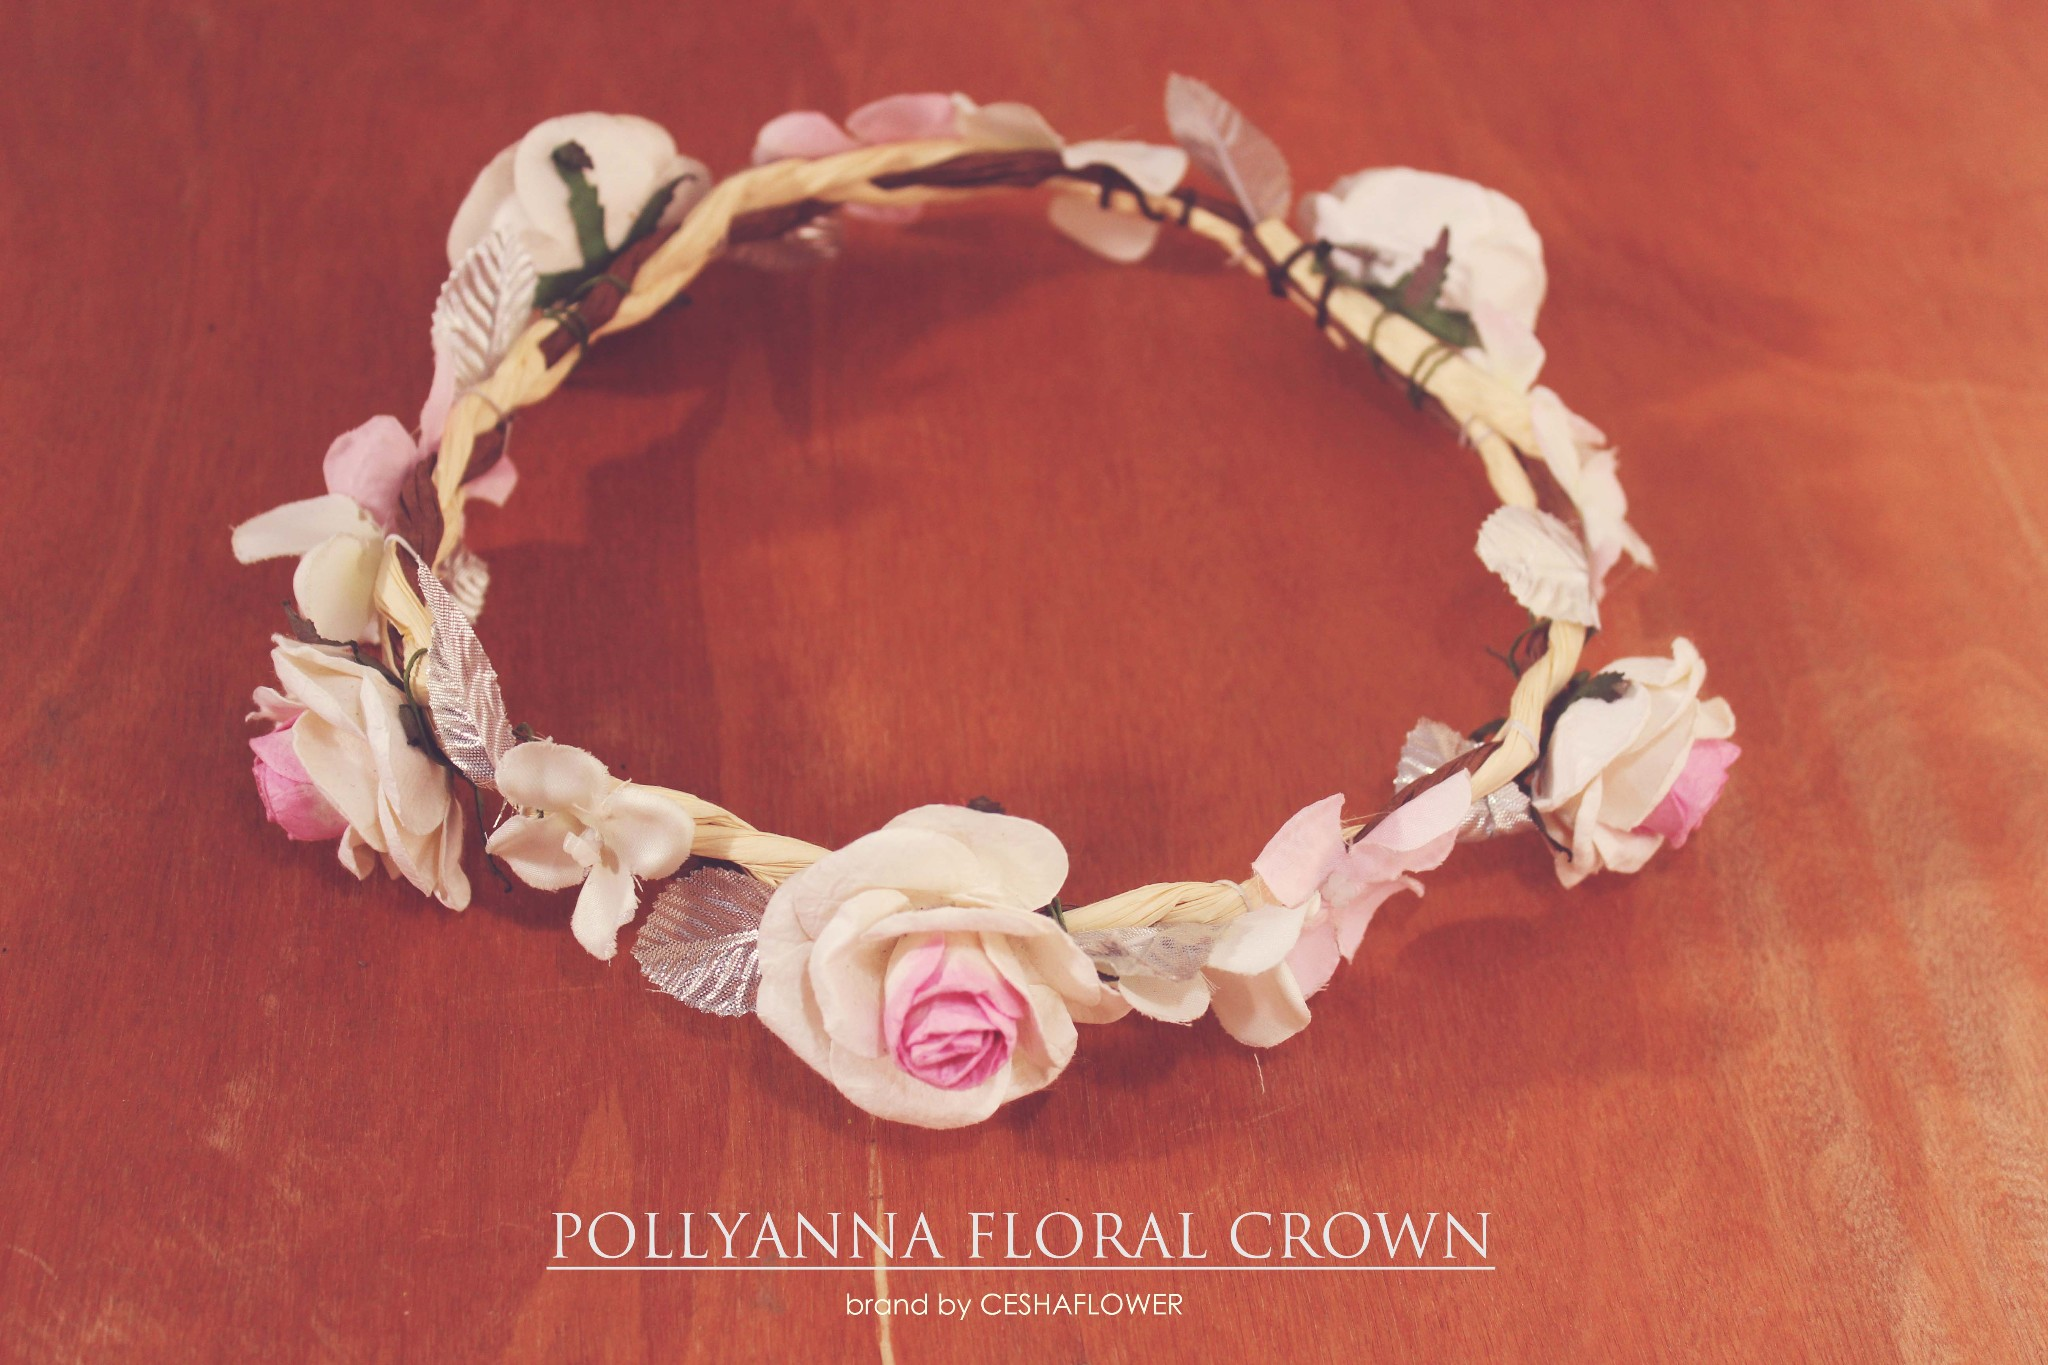 Jual flower crown murah flower crown ready tokopedia izmirmasajfo Image collections